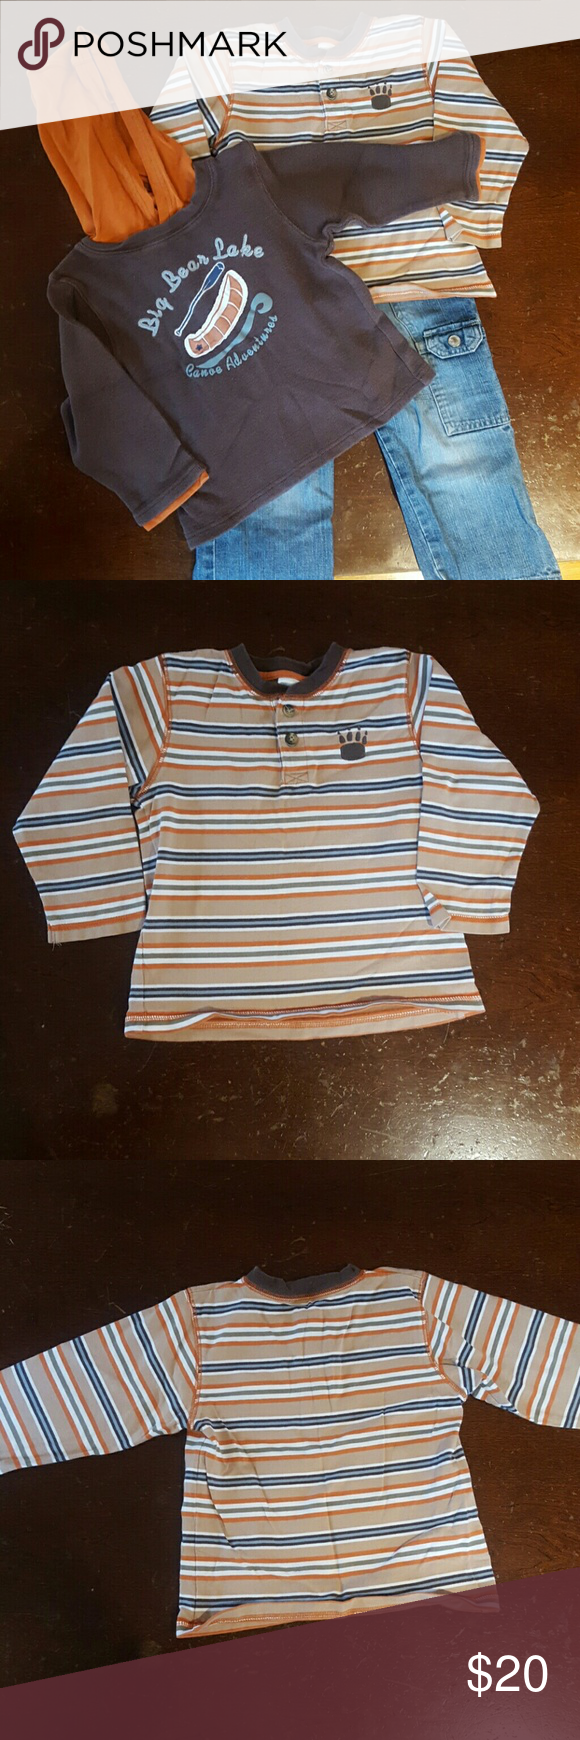 Gymboree striped shirt, sweatshirt and jeans 3T Gymboree brown & orange  hooded sweatshirt with Big Bear Lake Canoe Adventures; orange, tan, brown and blue striped Henley shirt with bear paw; and denim cargo pants. All size 3T and 100% cotton.  No visible stains or damage. Comes from a non-smoking home. Gymboree Matching Sets